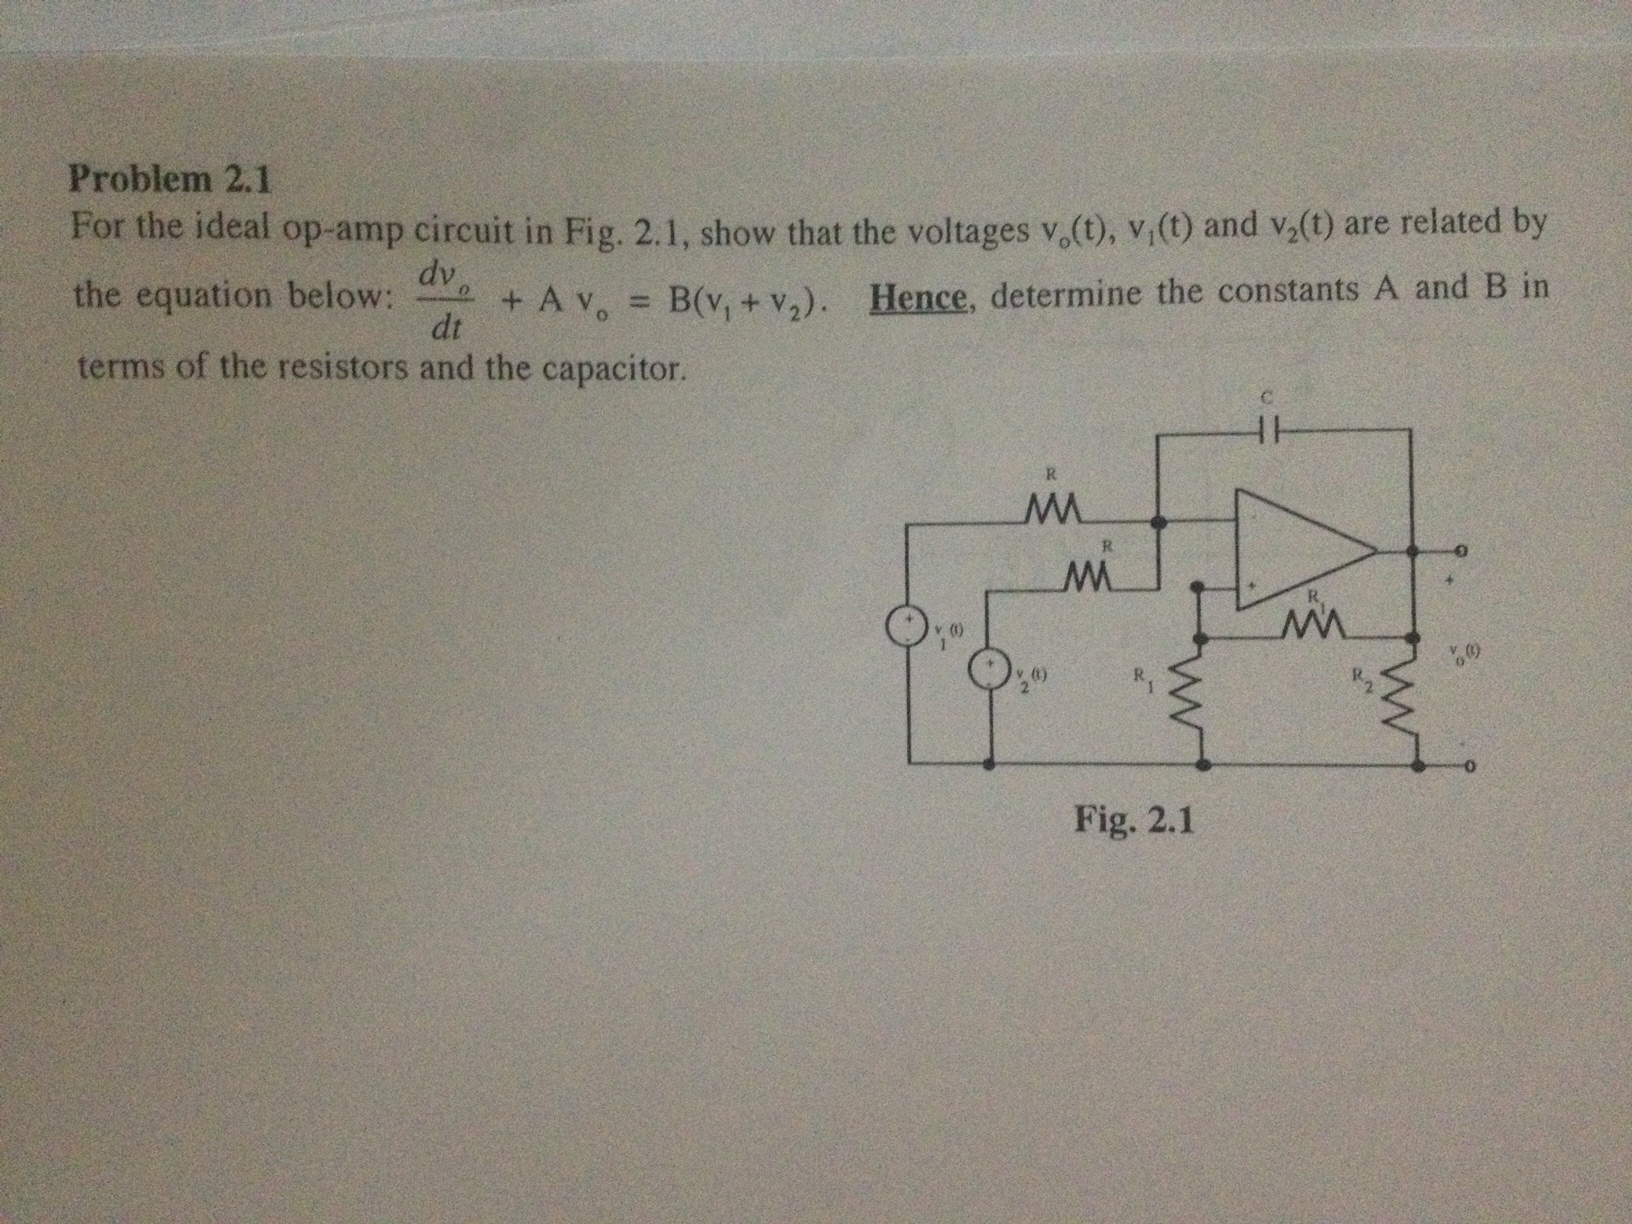 For the ideal op-amp circuit in Fig. 2.1, show tha